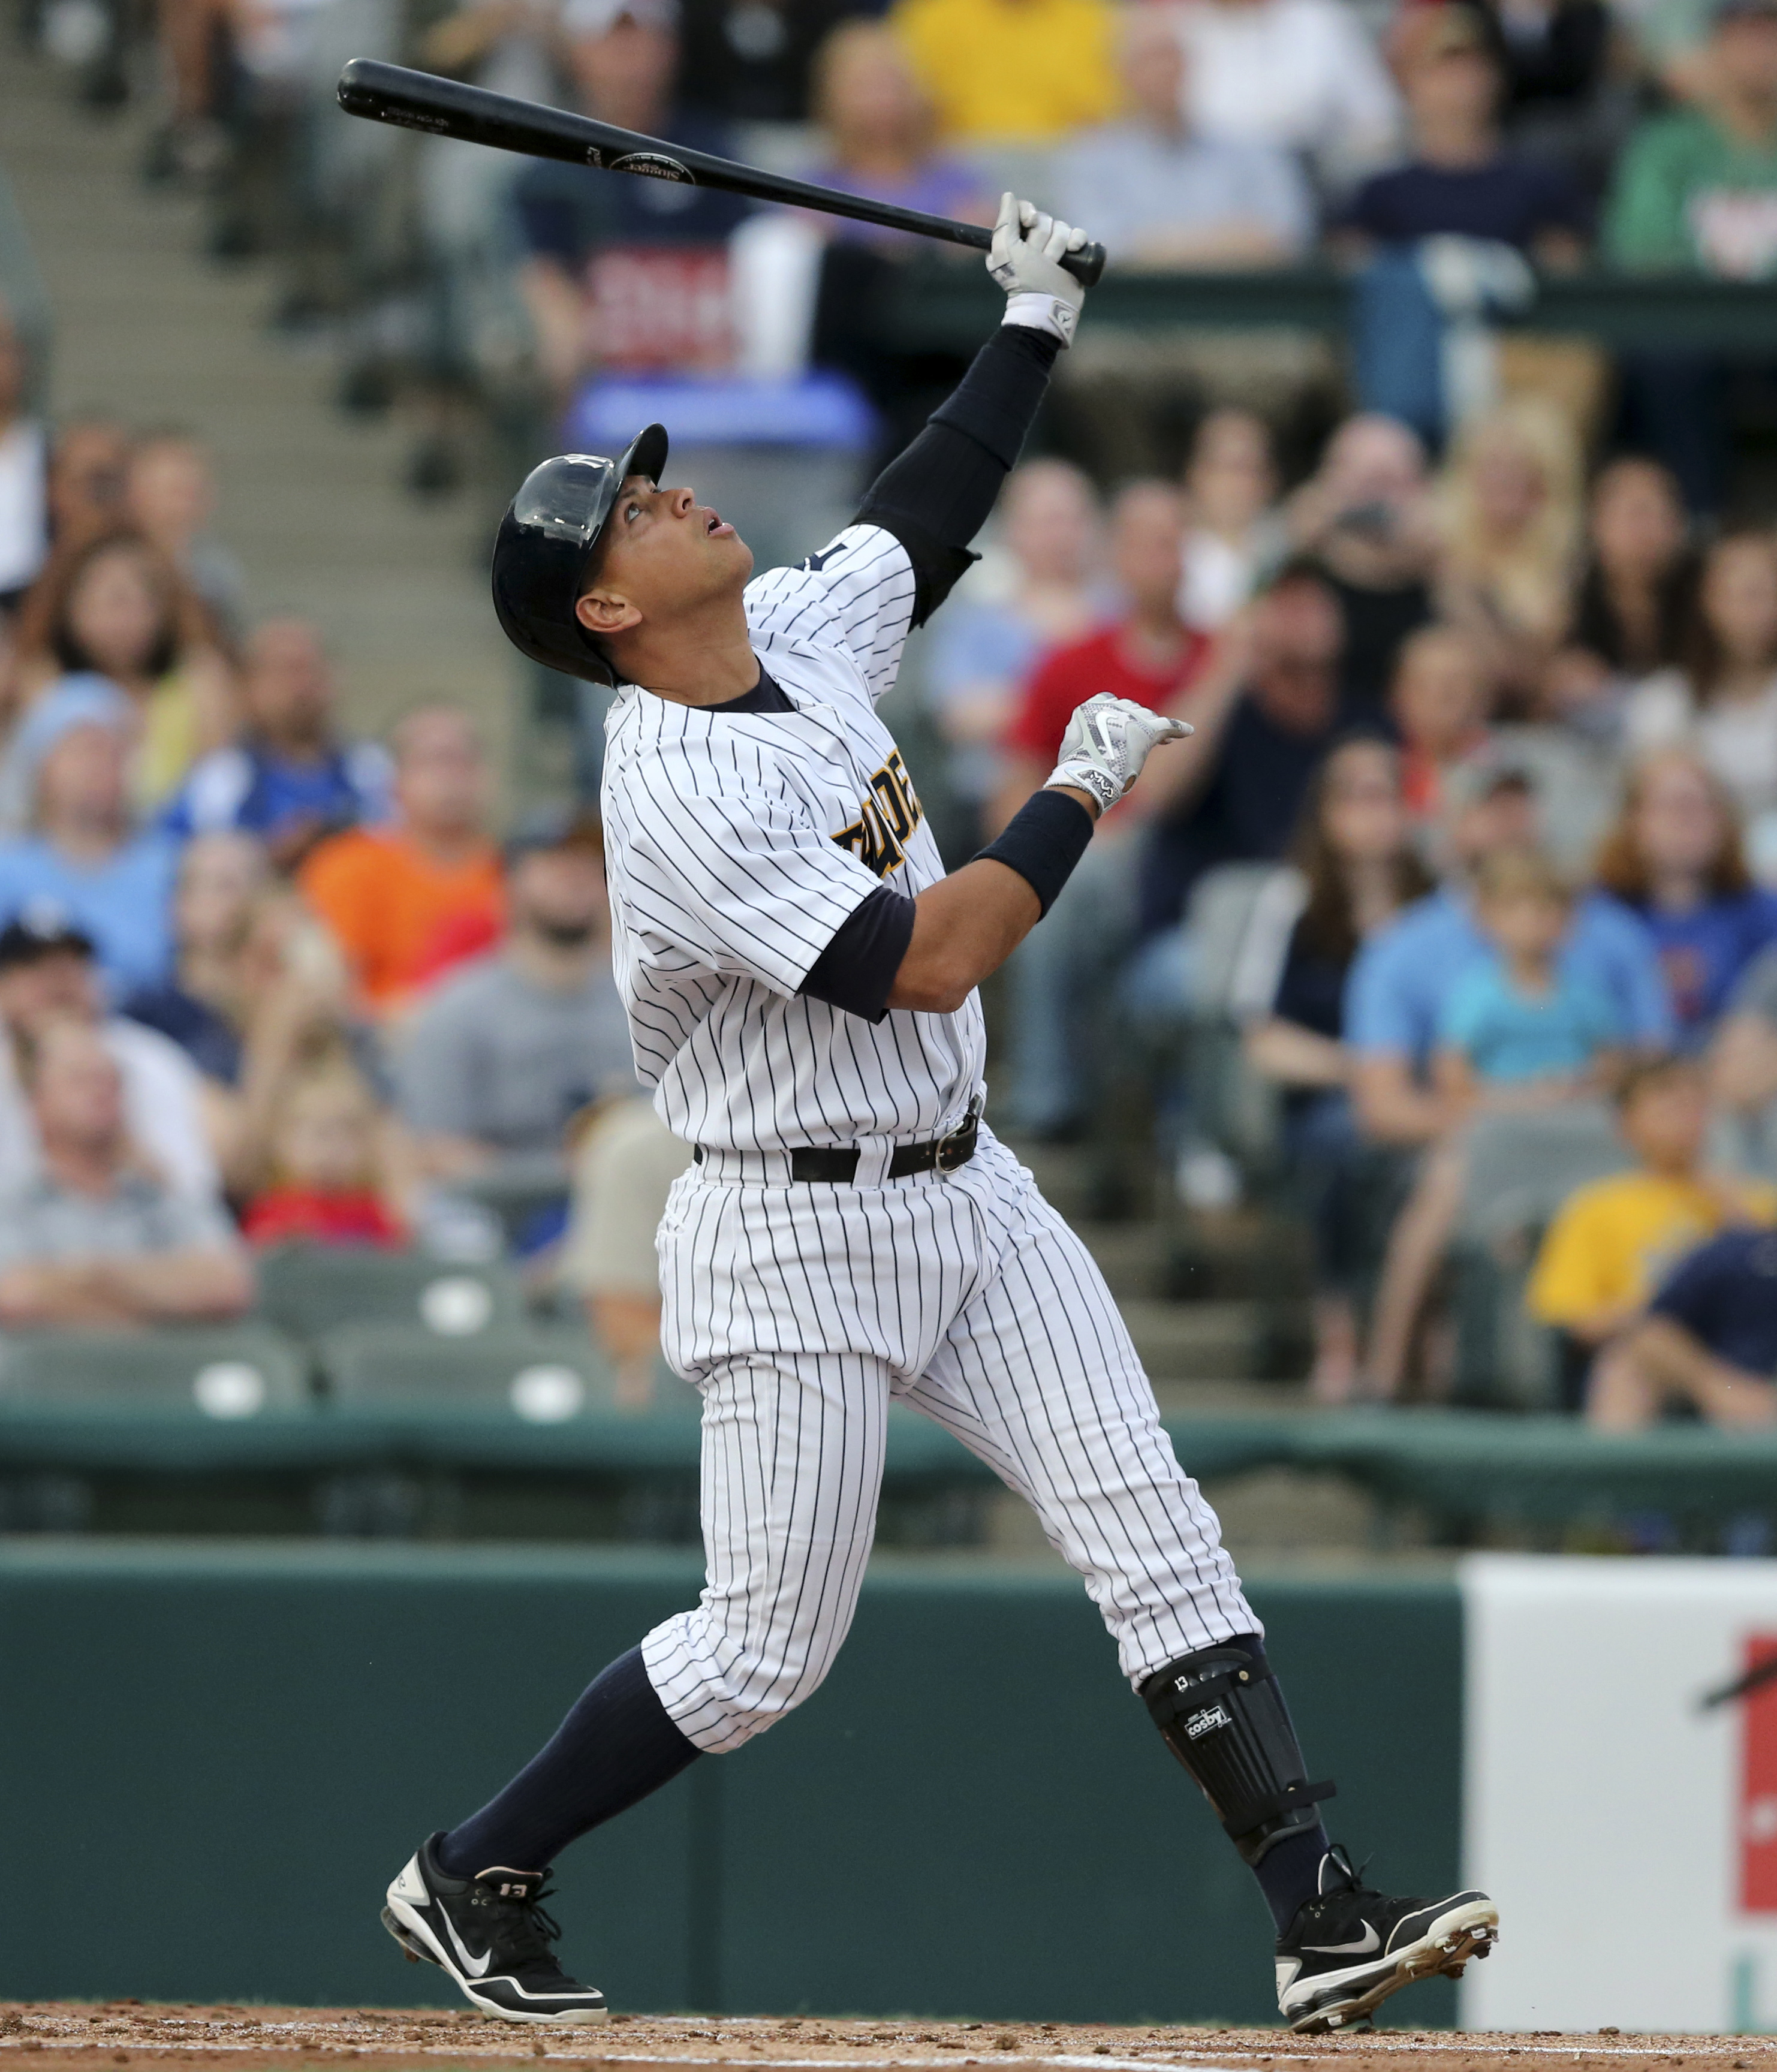 New York Yankees third baseman Alex Rodriguez watches his pop-up during a minor league rehab start for the Trenton Thunder, against the New Hampshire Fisher Cats on Tuesday, May 24, 2016, in Trenton, N.J. (AP Photo/Mel Evans)